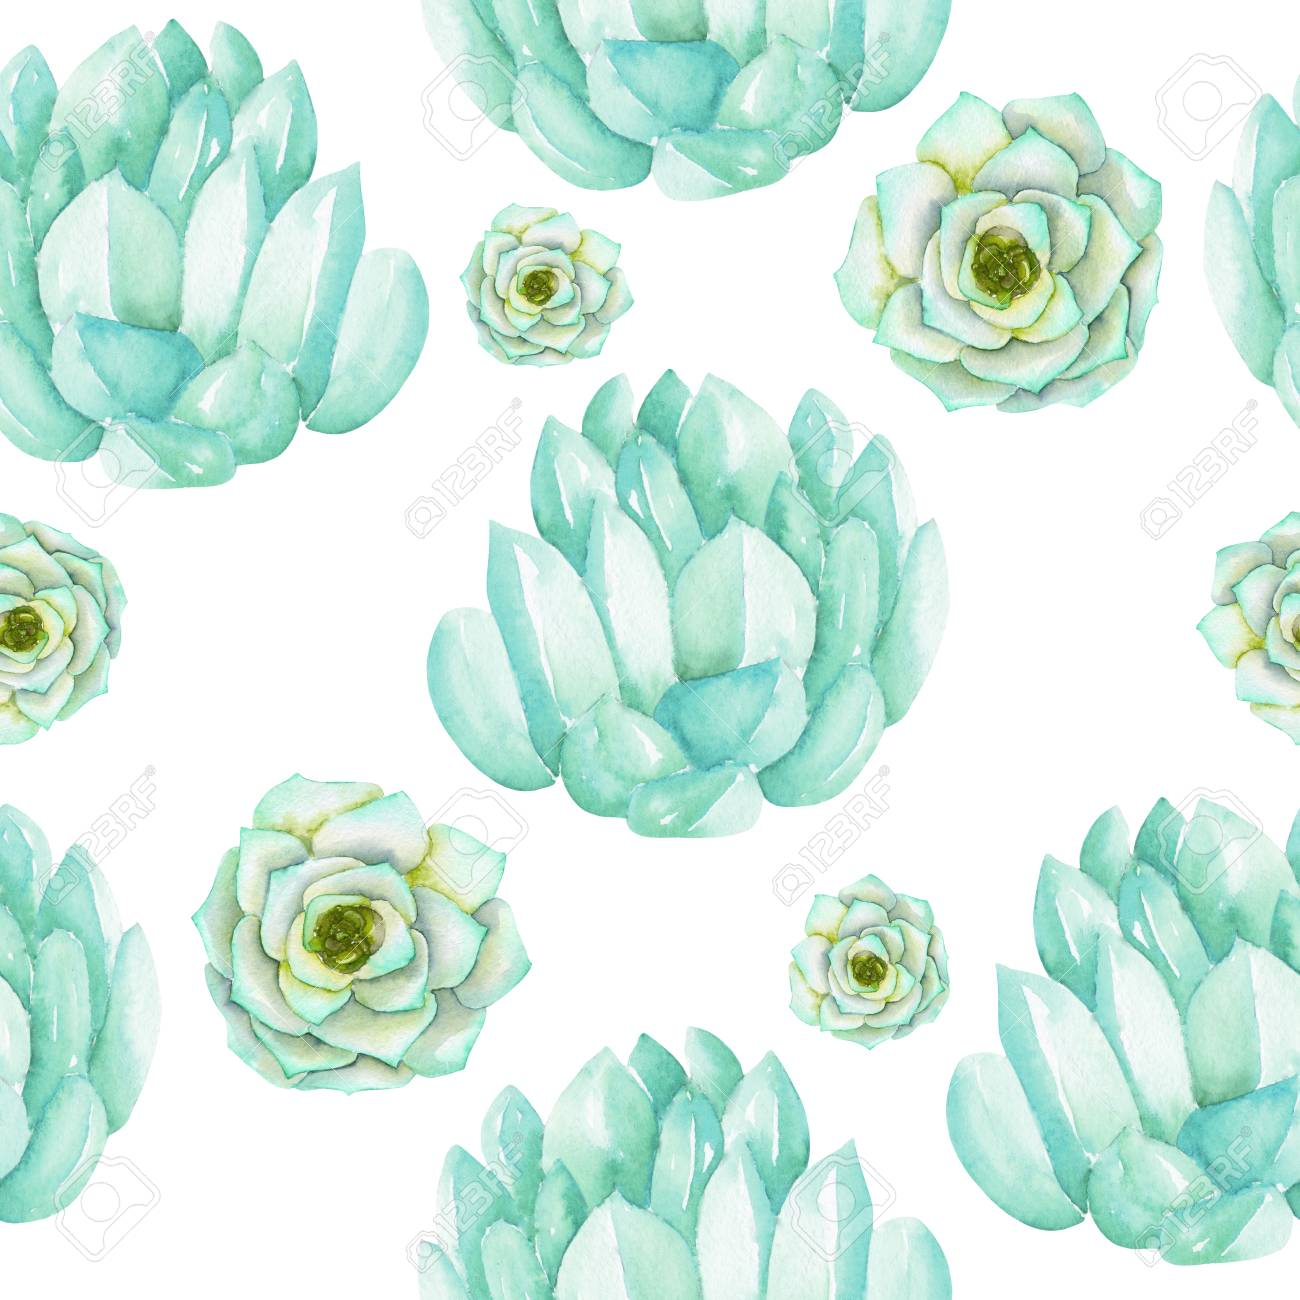 A Seamless Pattern With The Watercolor Blue And Mint Succulents Stock Photo Picture And Royalty Free Image Image 53840147